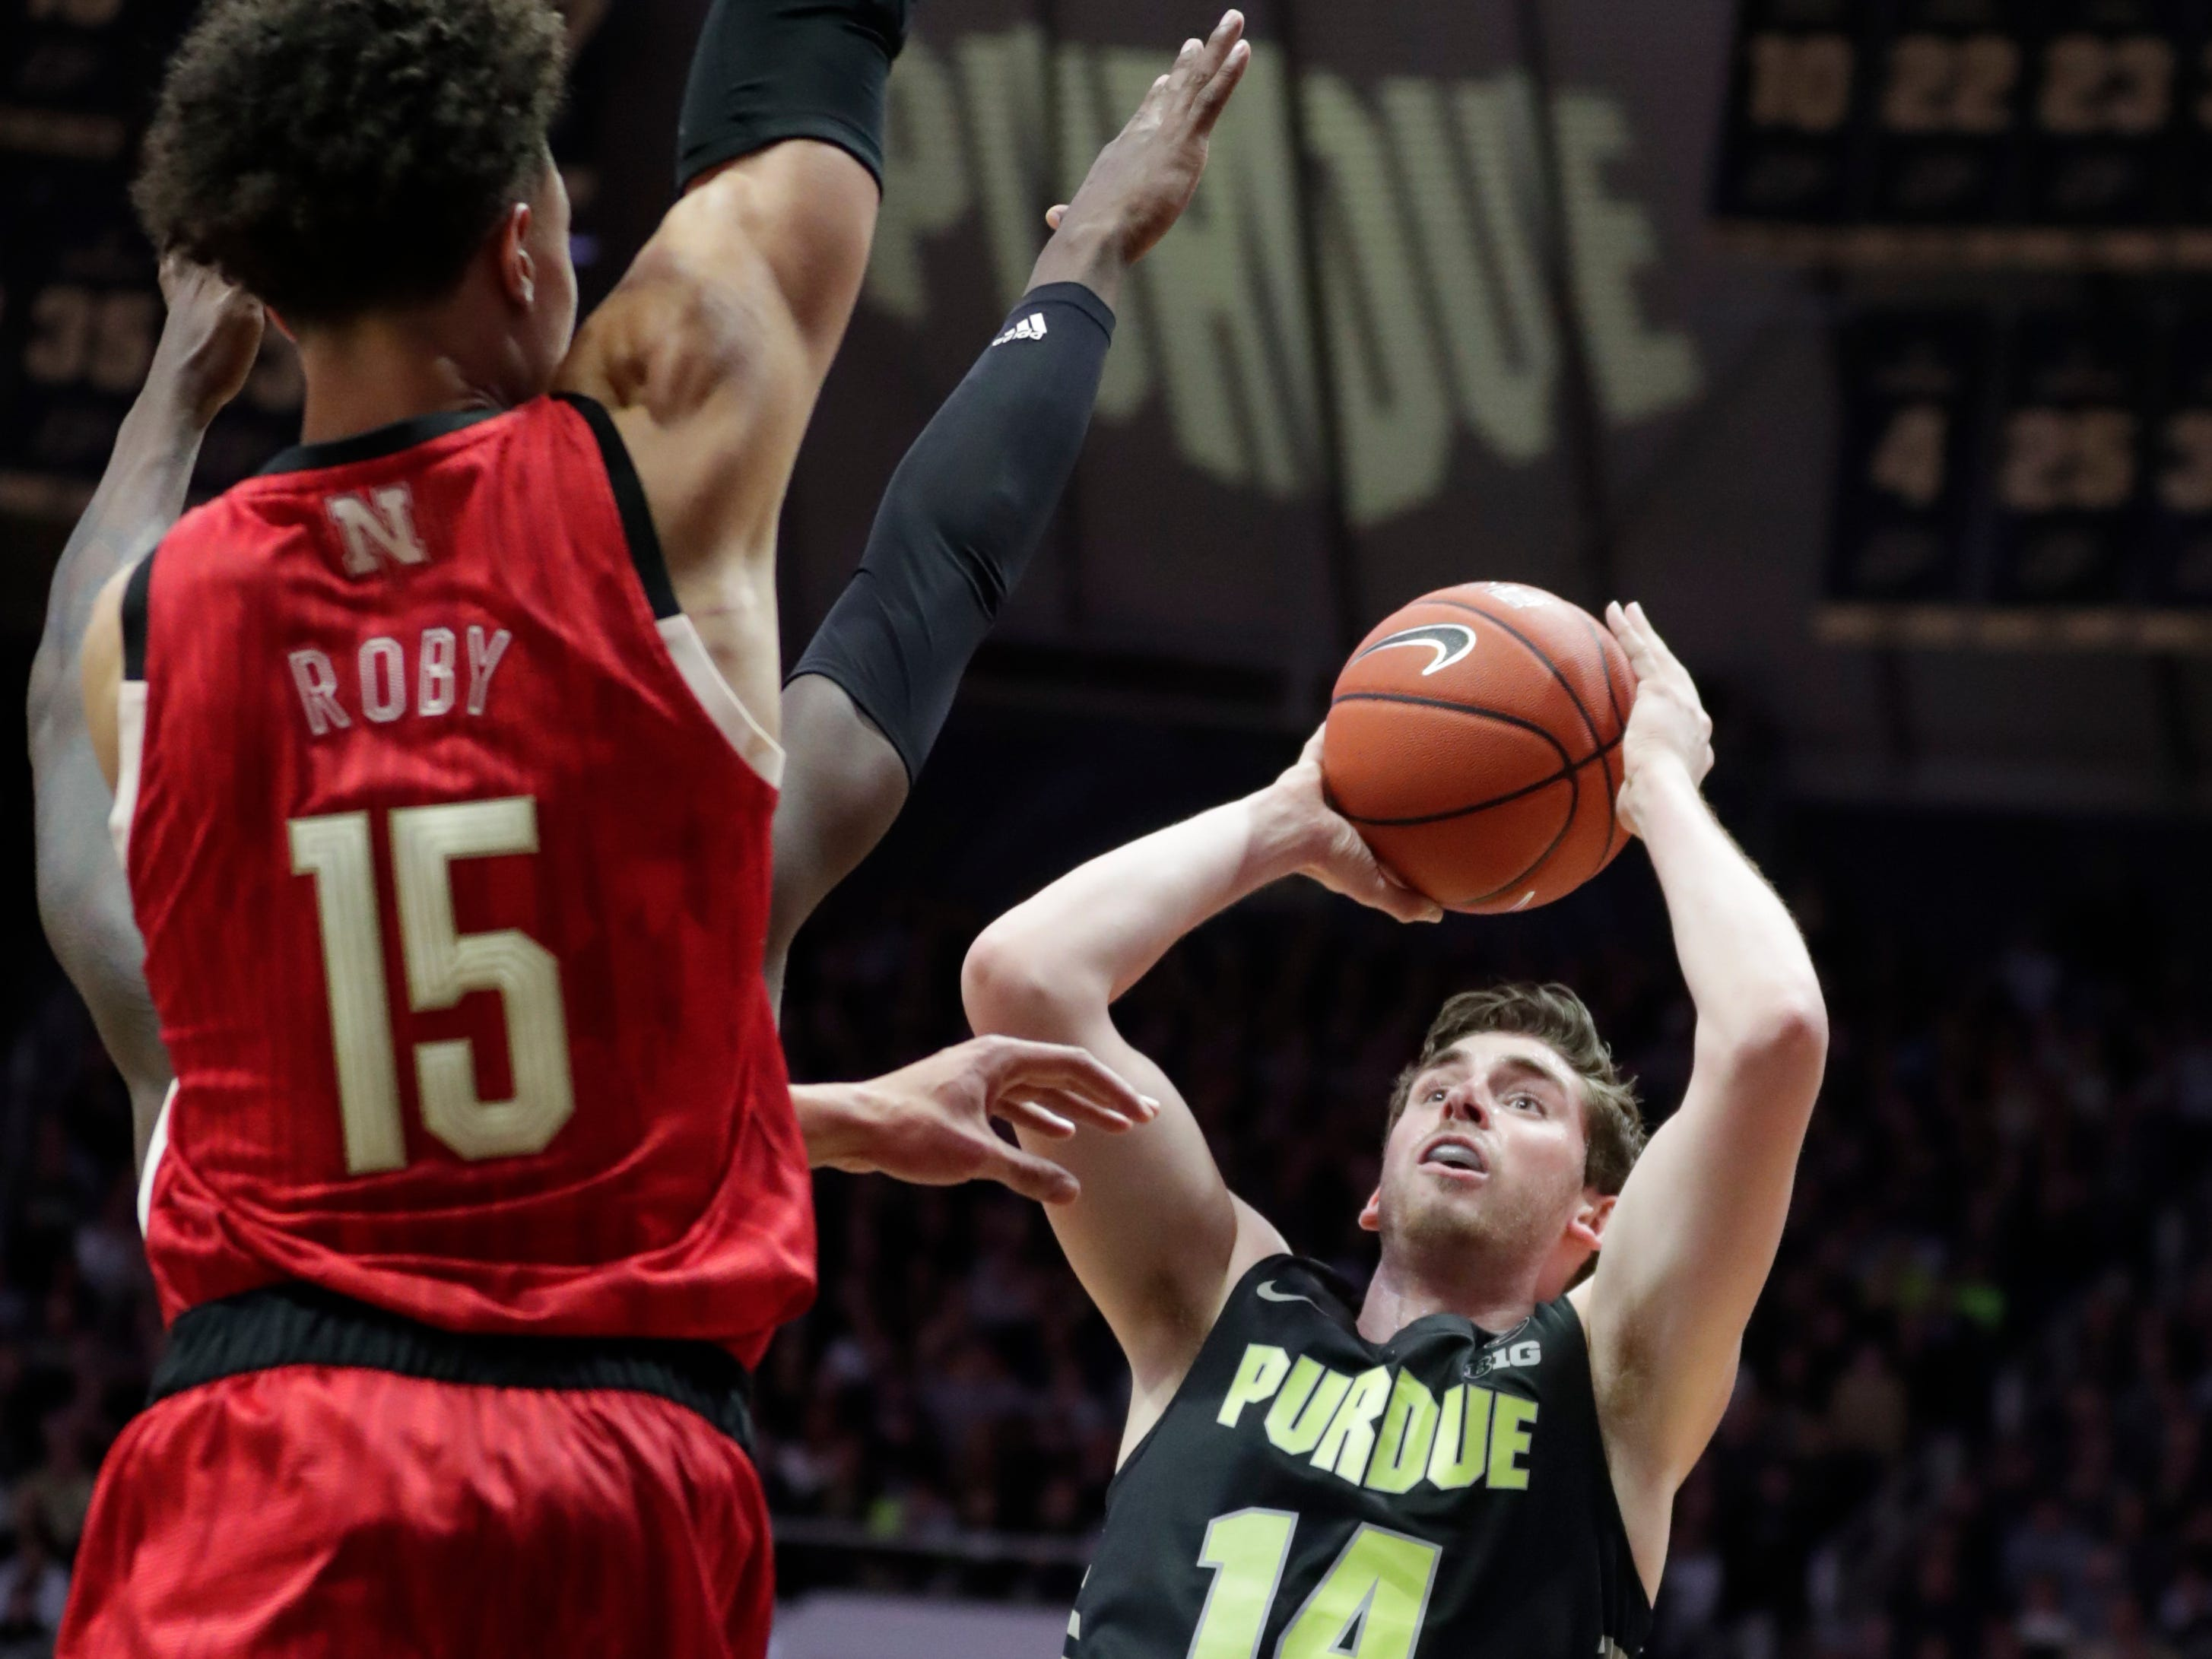 Purdue guard Ryan Cline (14) shoots over Nebraska forward Isaiah Roby (15) during the first half.